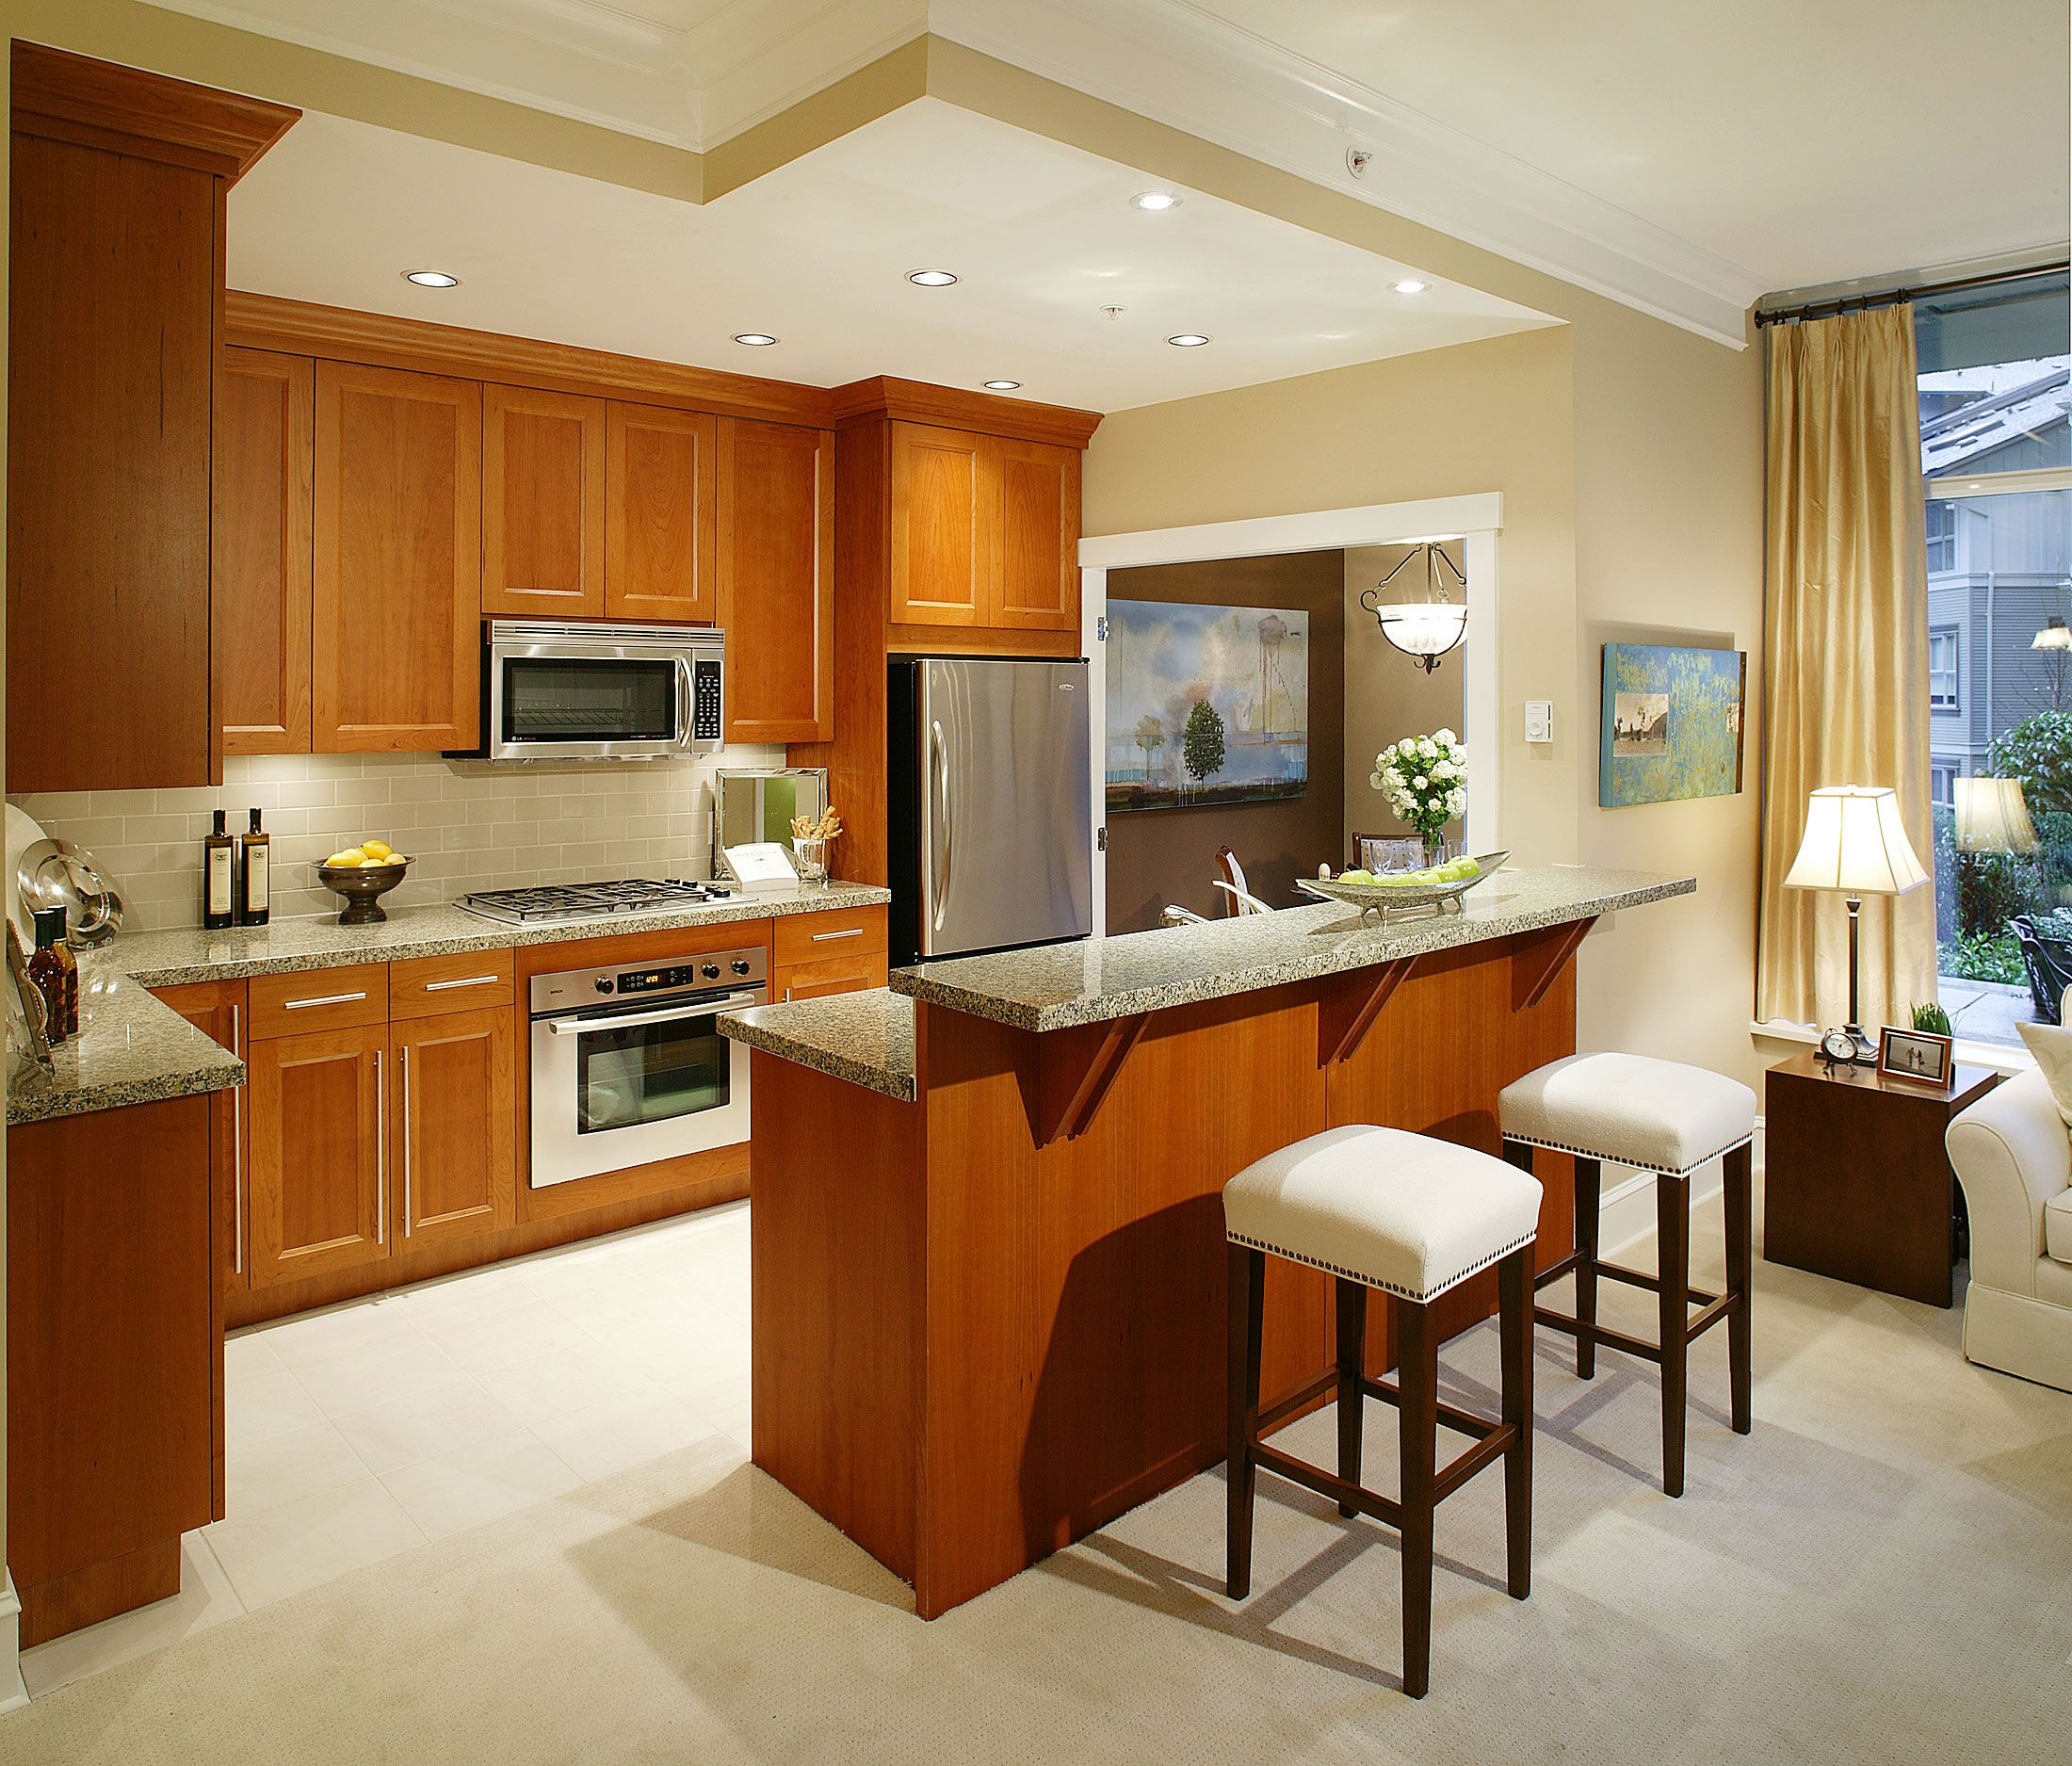 How to make your ceiling look taller ceilings contemporary